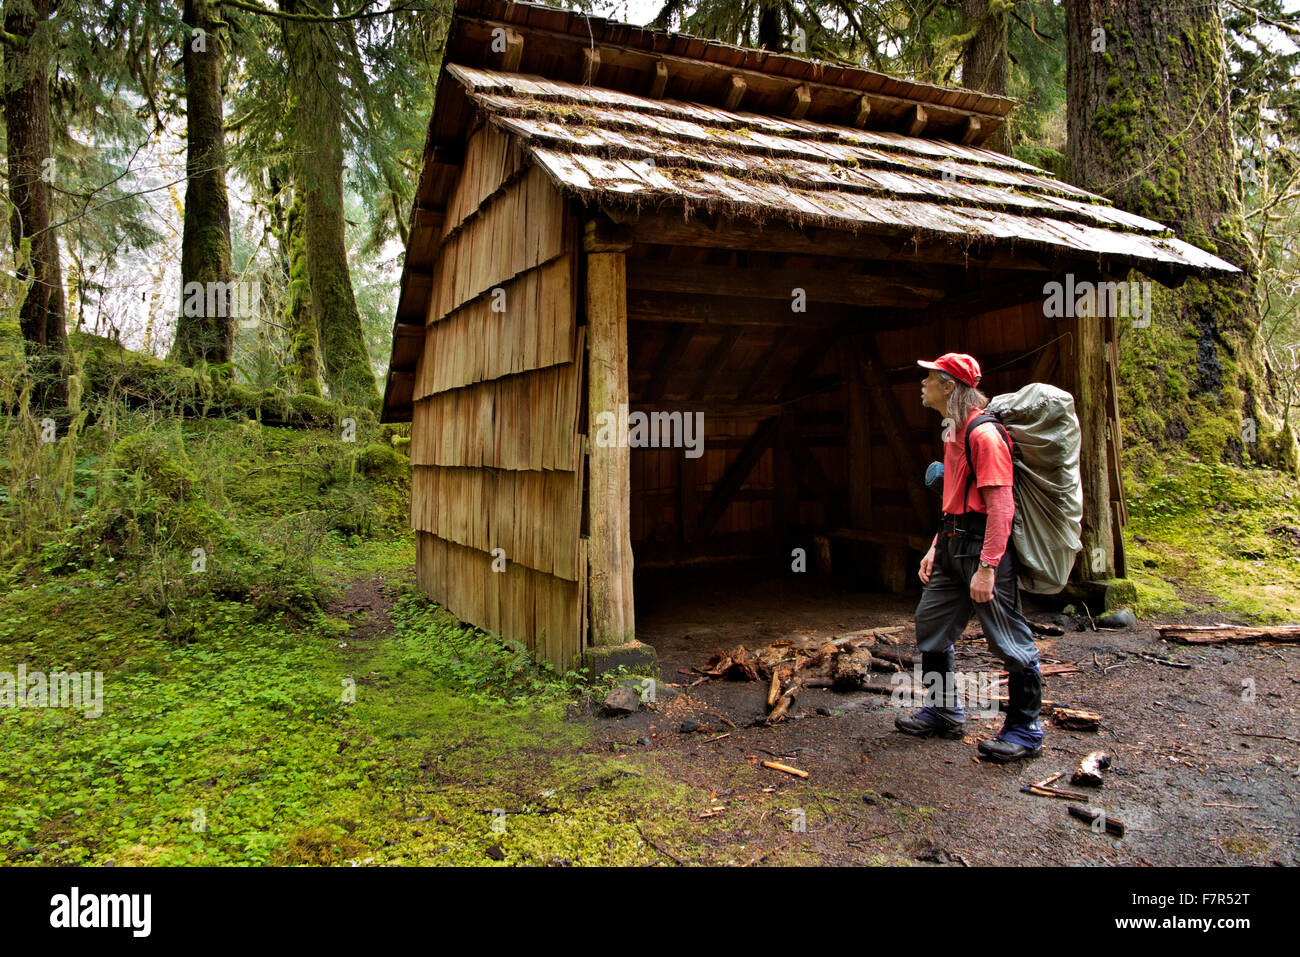 Dark and uninviting, the Happy Four Emergency Shelter is an extremely welcome site for cold and wet hikers on Hoh - Stock Image